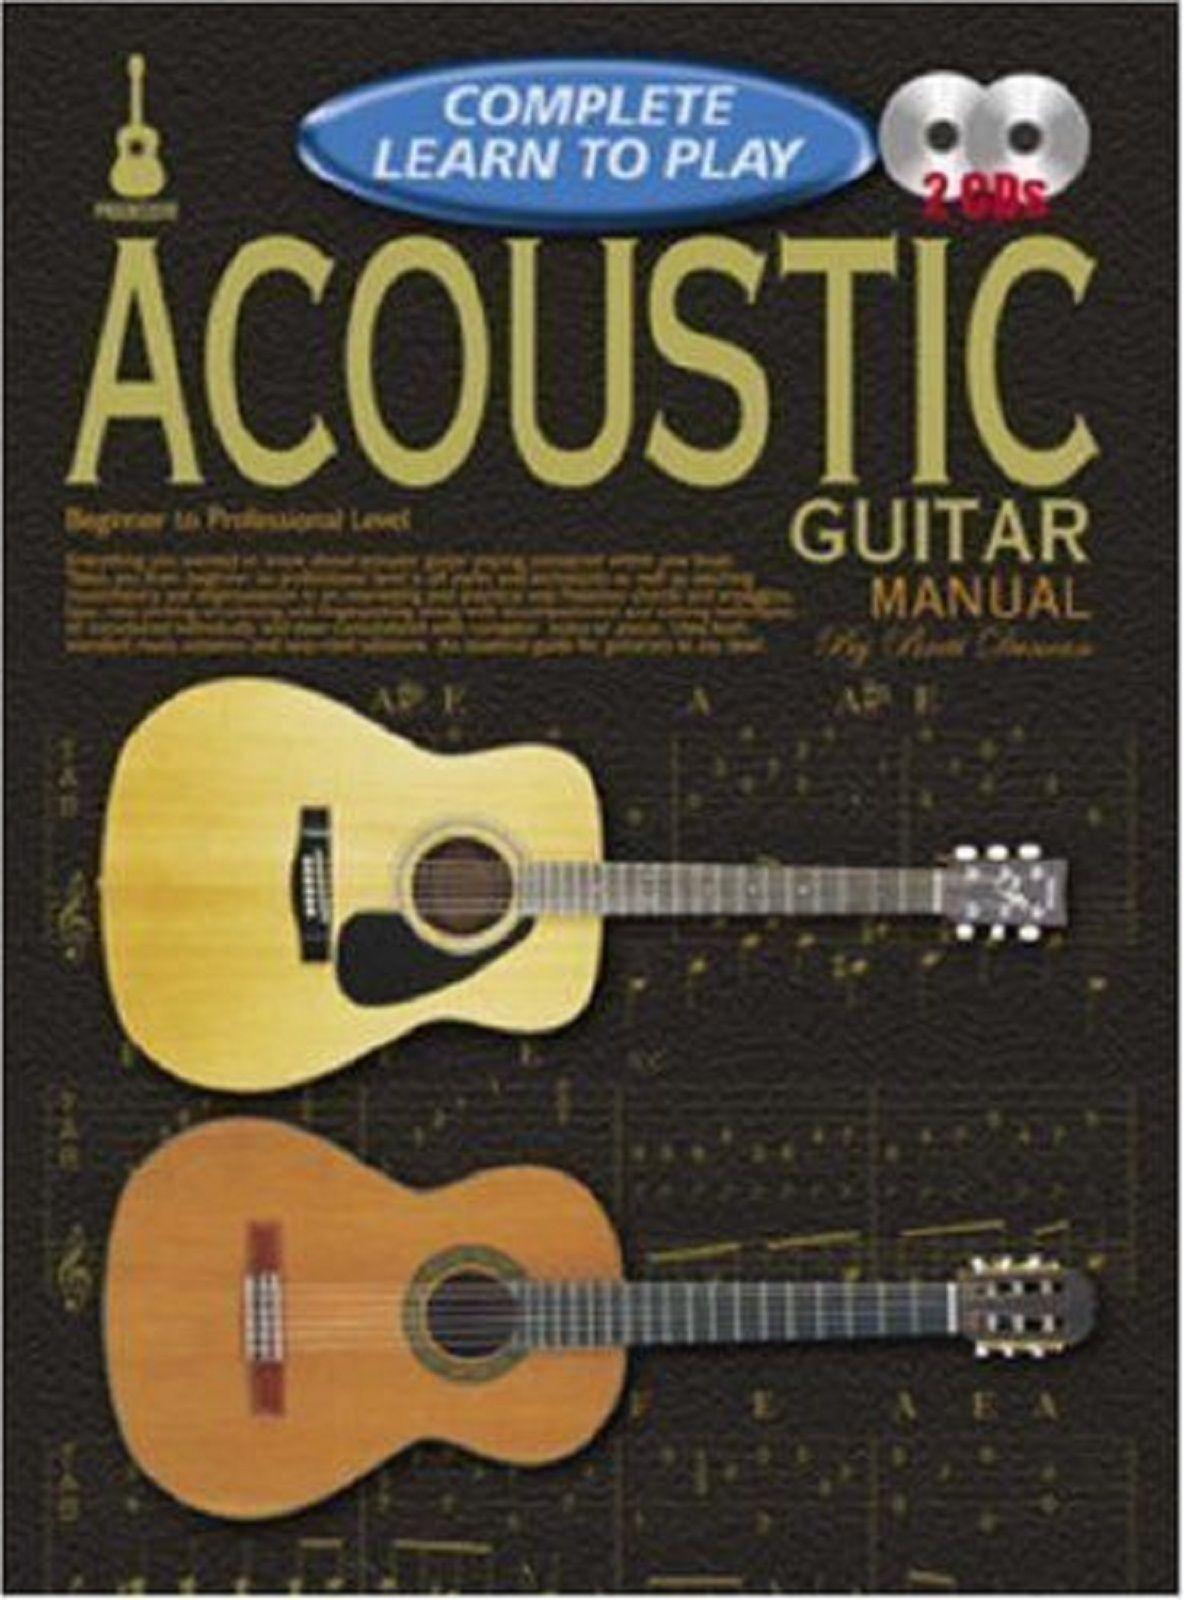 Acoustic Guitar Manual Complete Learn to Play Beginner Professional CD Book S115